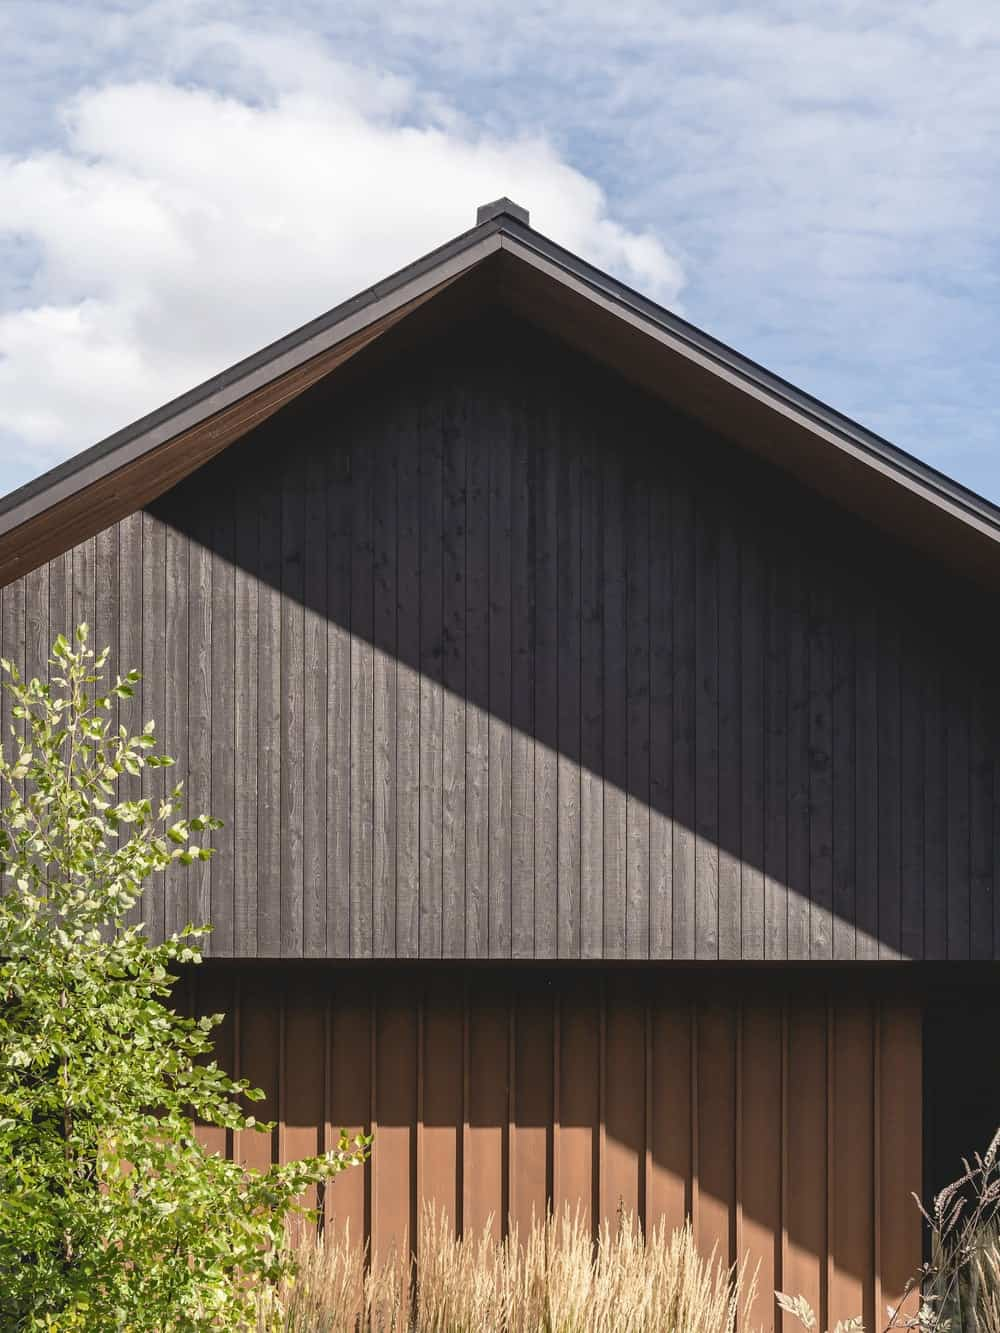 This is a close look at the dark wooden exterior wall of the house along with the A-frame roof of the house.